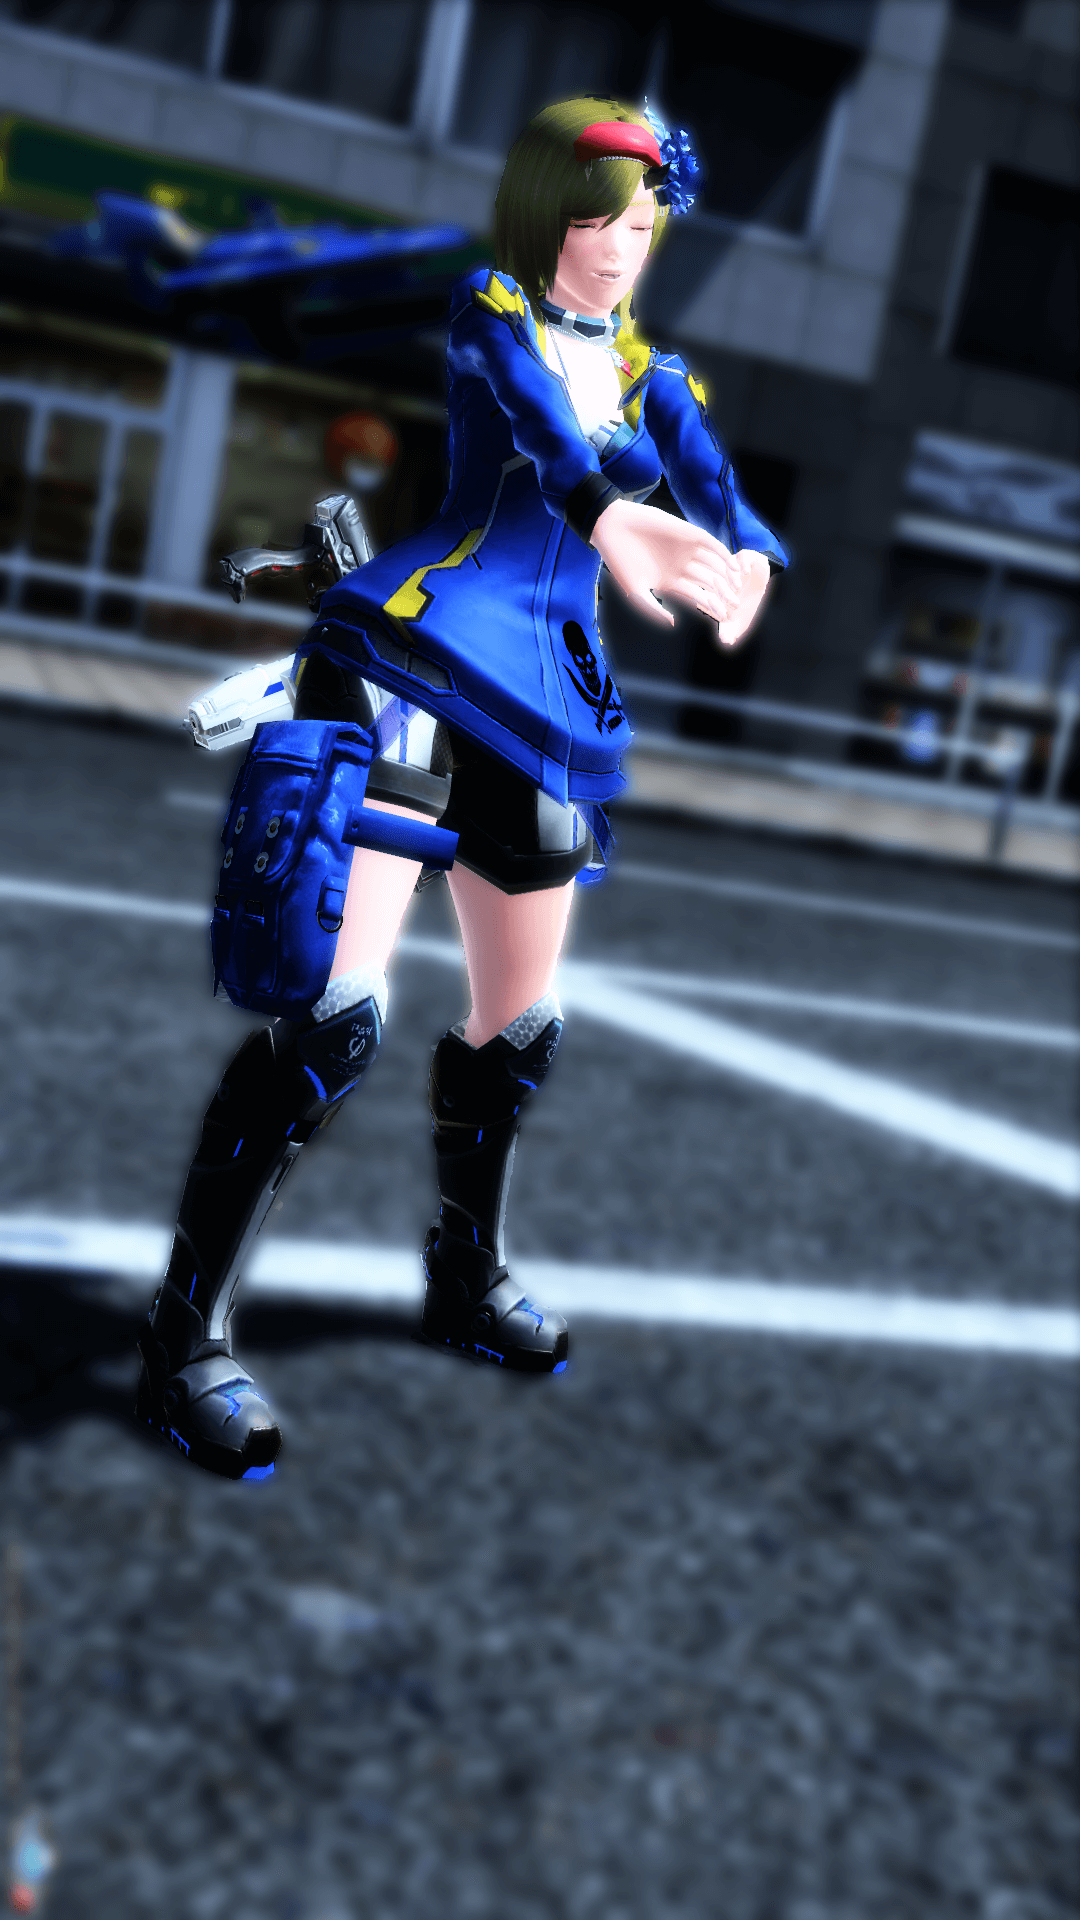 pso20160311_172303_014.png